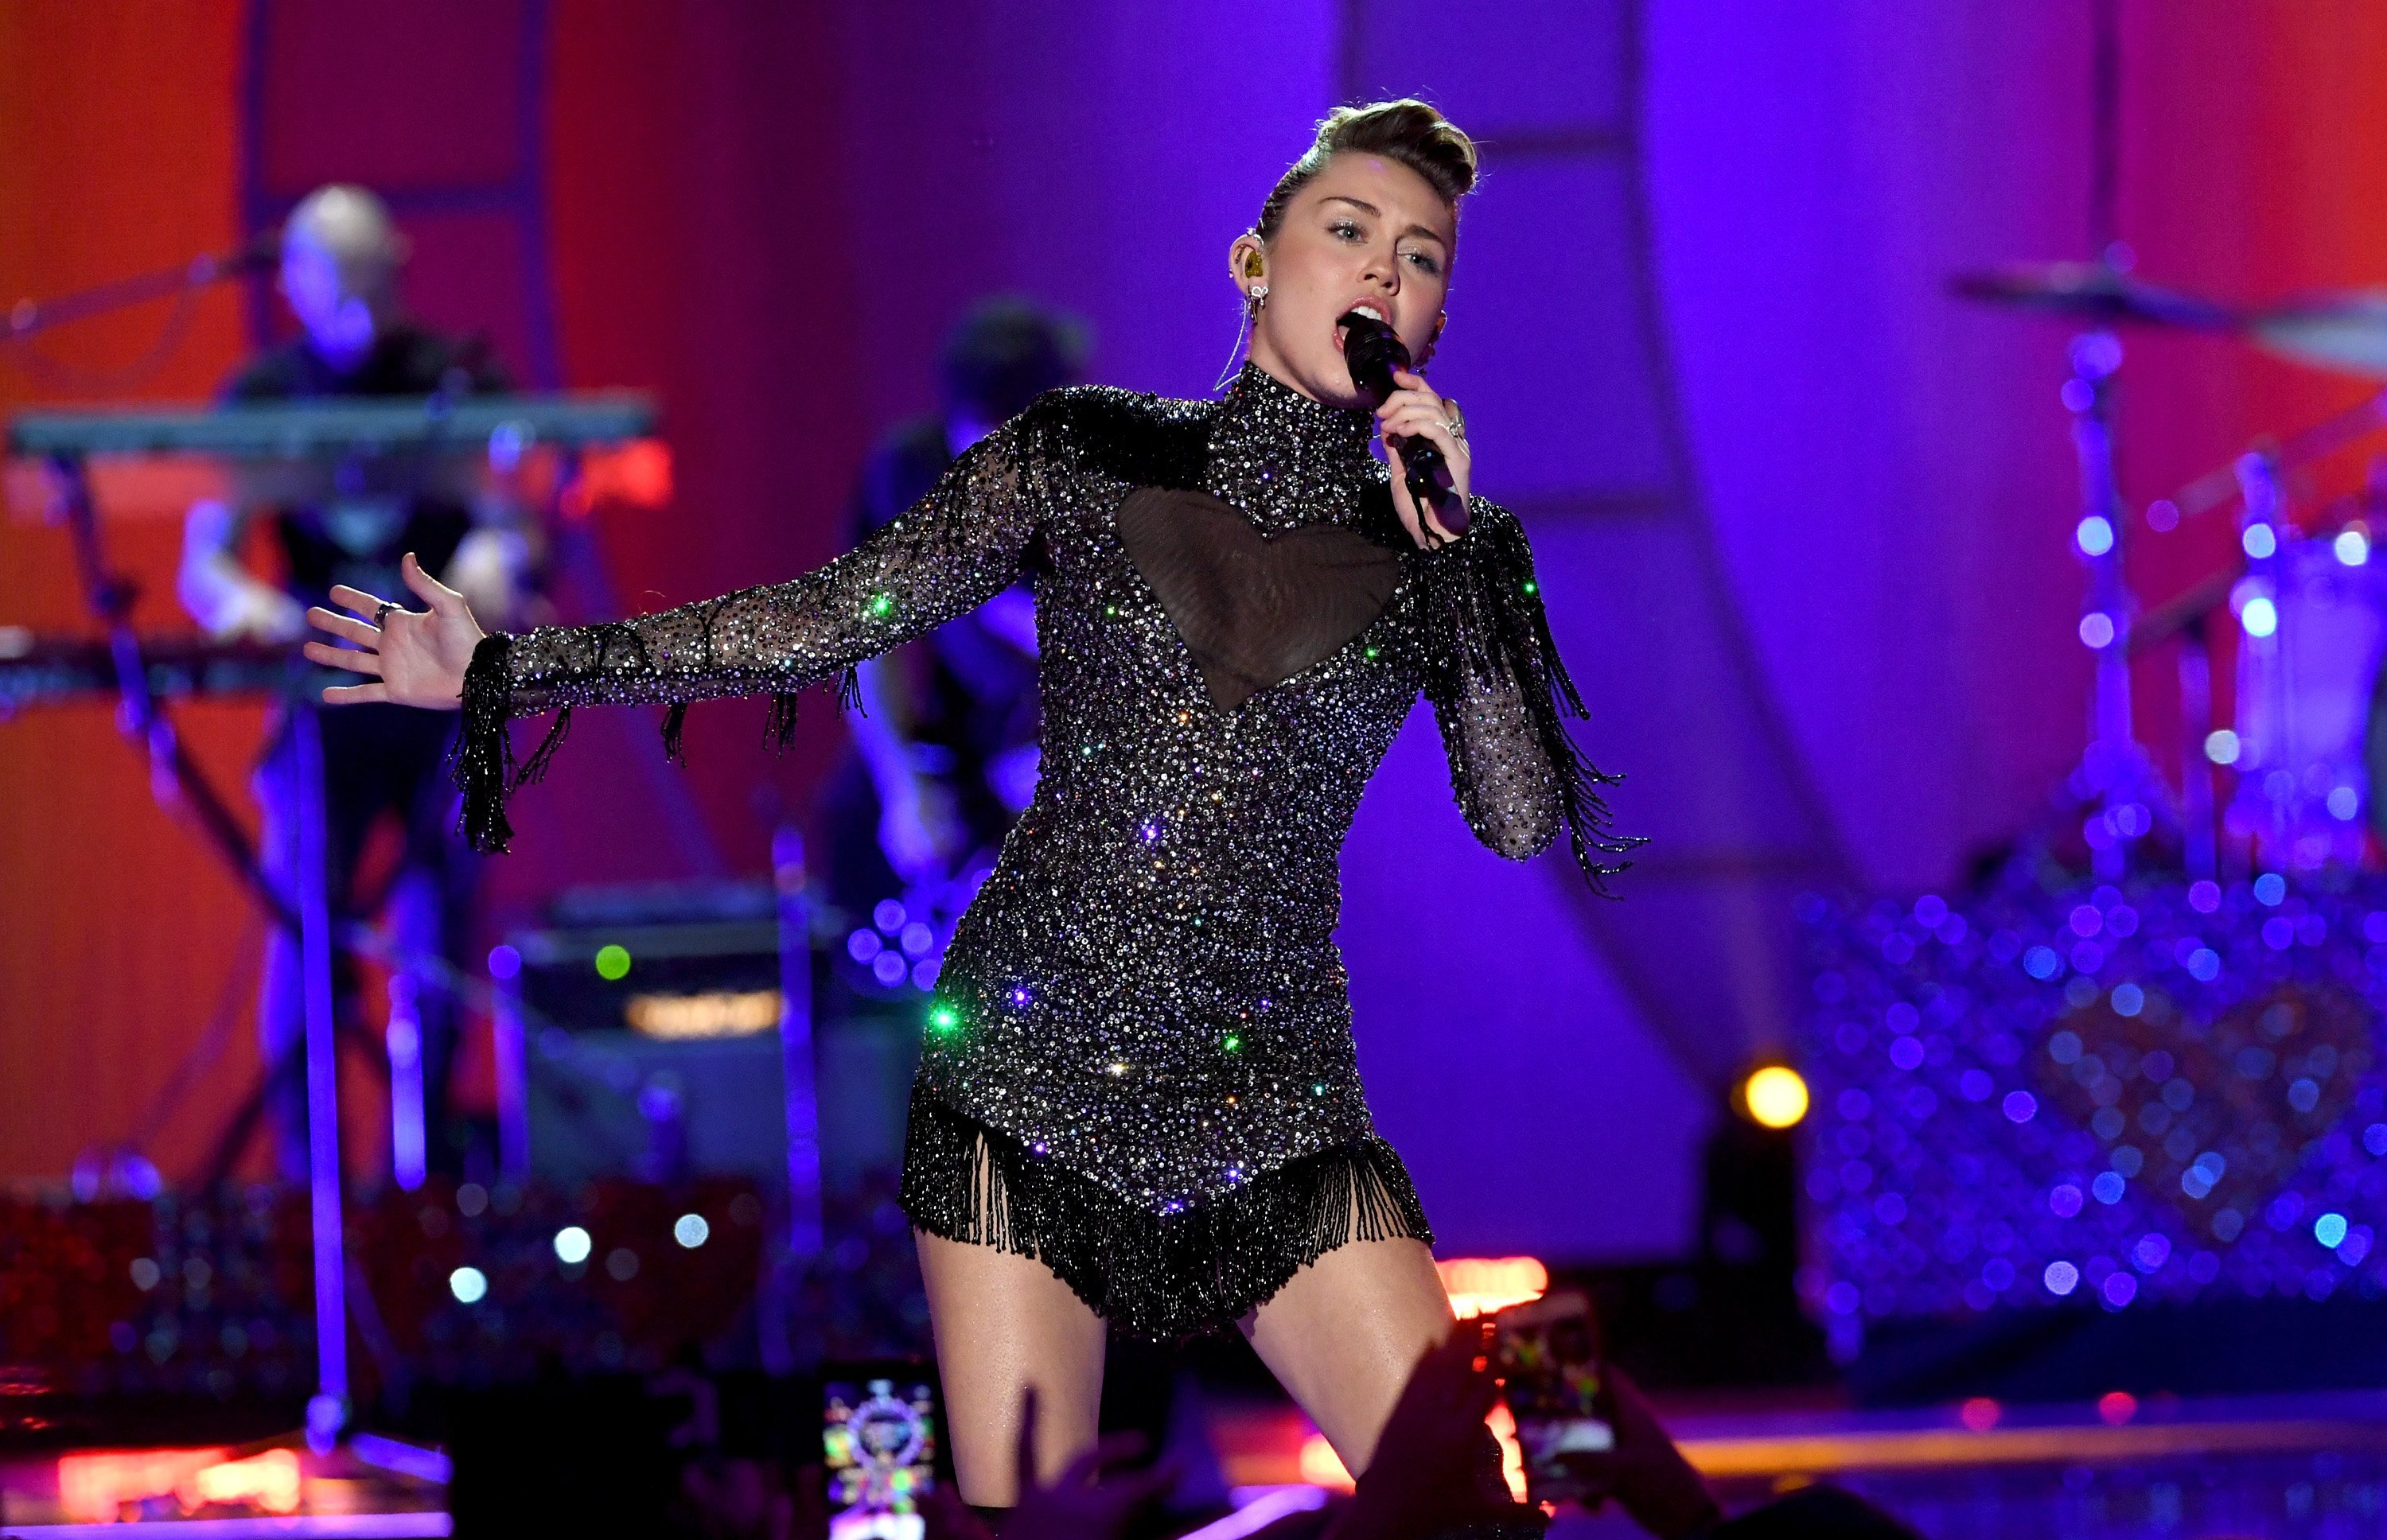 Miley Cyrus performs onstage during the 2017 iHeartRadio Music Festival at T-Mobile Arena on September 23, 2017, in Las Vegas, Nevada.   Source: Getty Images.